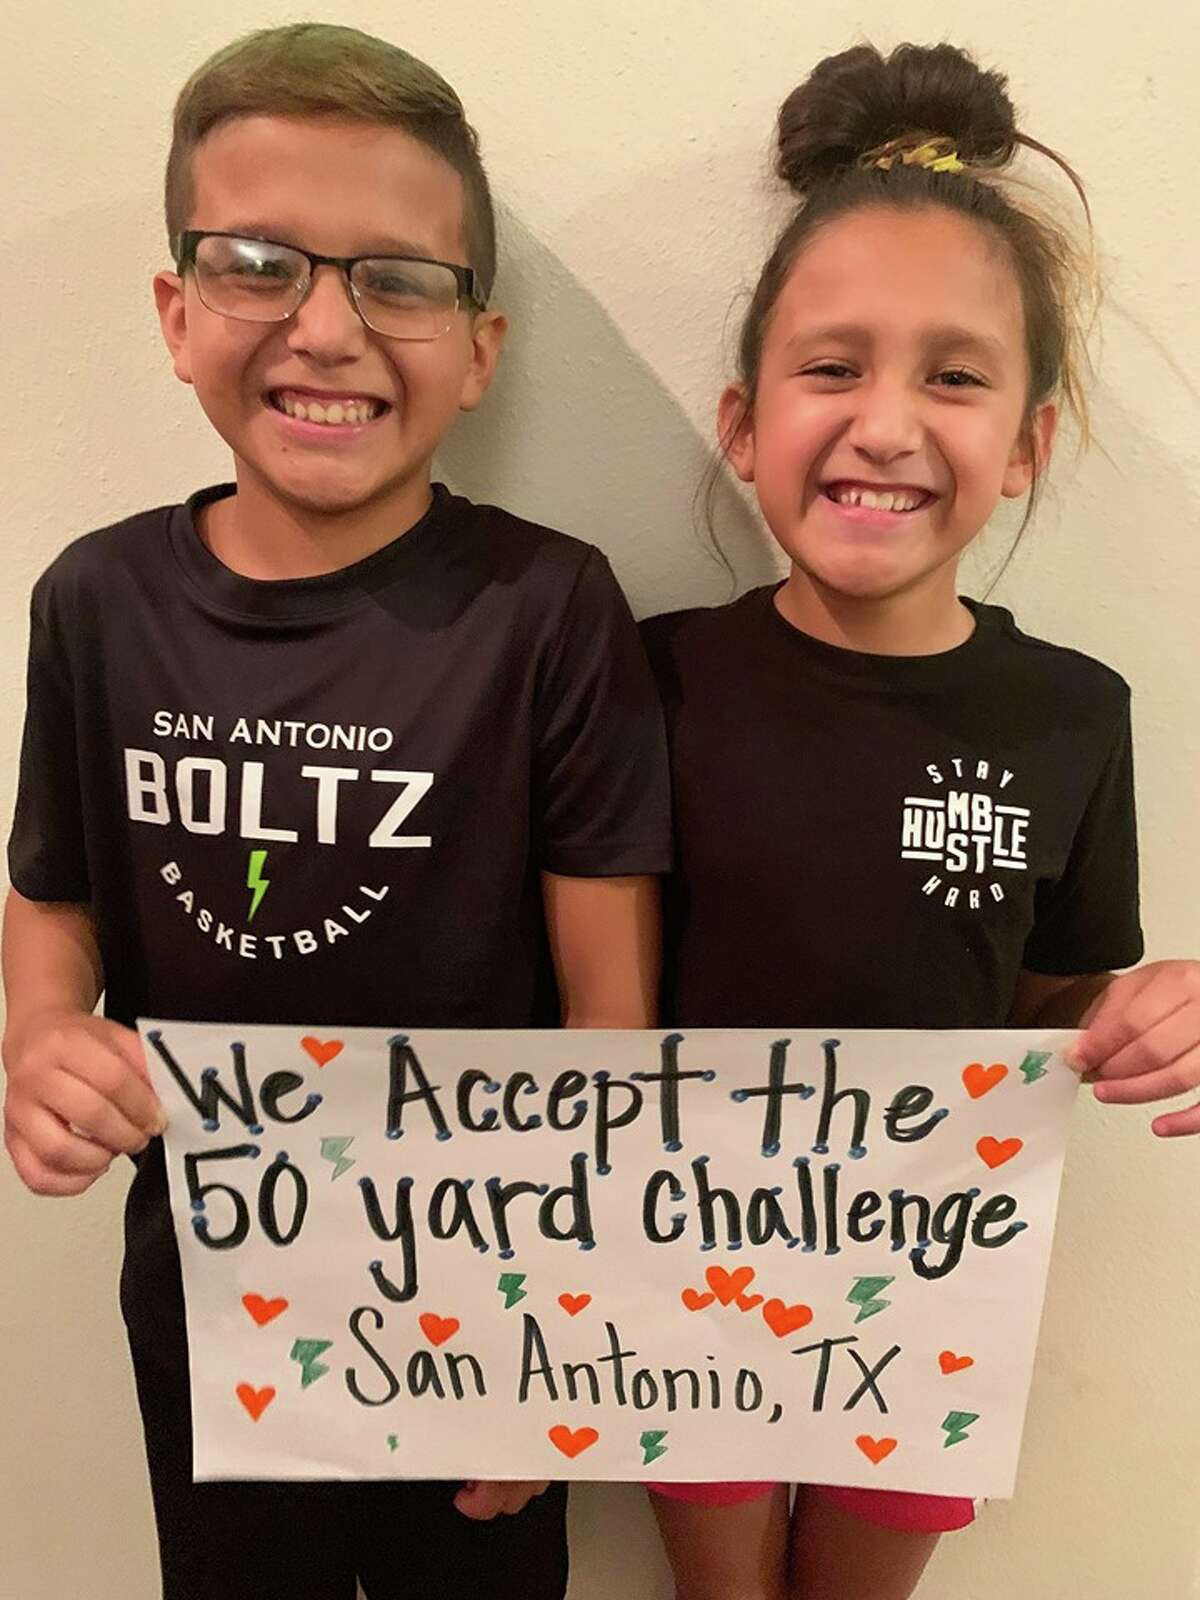 Meet brother-sister duo Nathan and Zoe, 12 and 10, respectively. They recently accepted the nationwide 50 Yard Challenge created by Rodney Smith Jr., the man who made headlines for his goal of cutting yards in all 50 states.